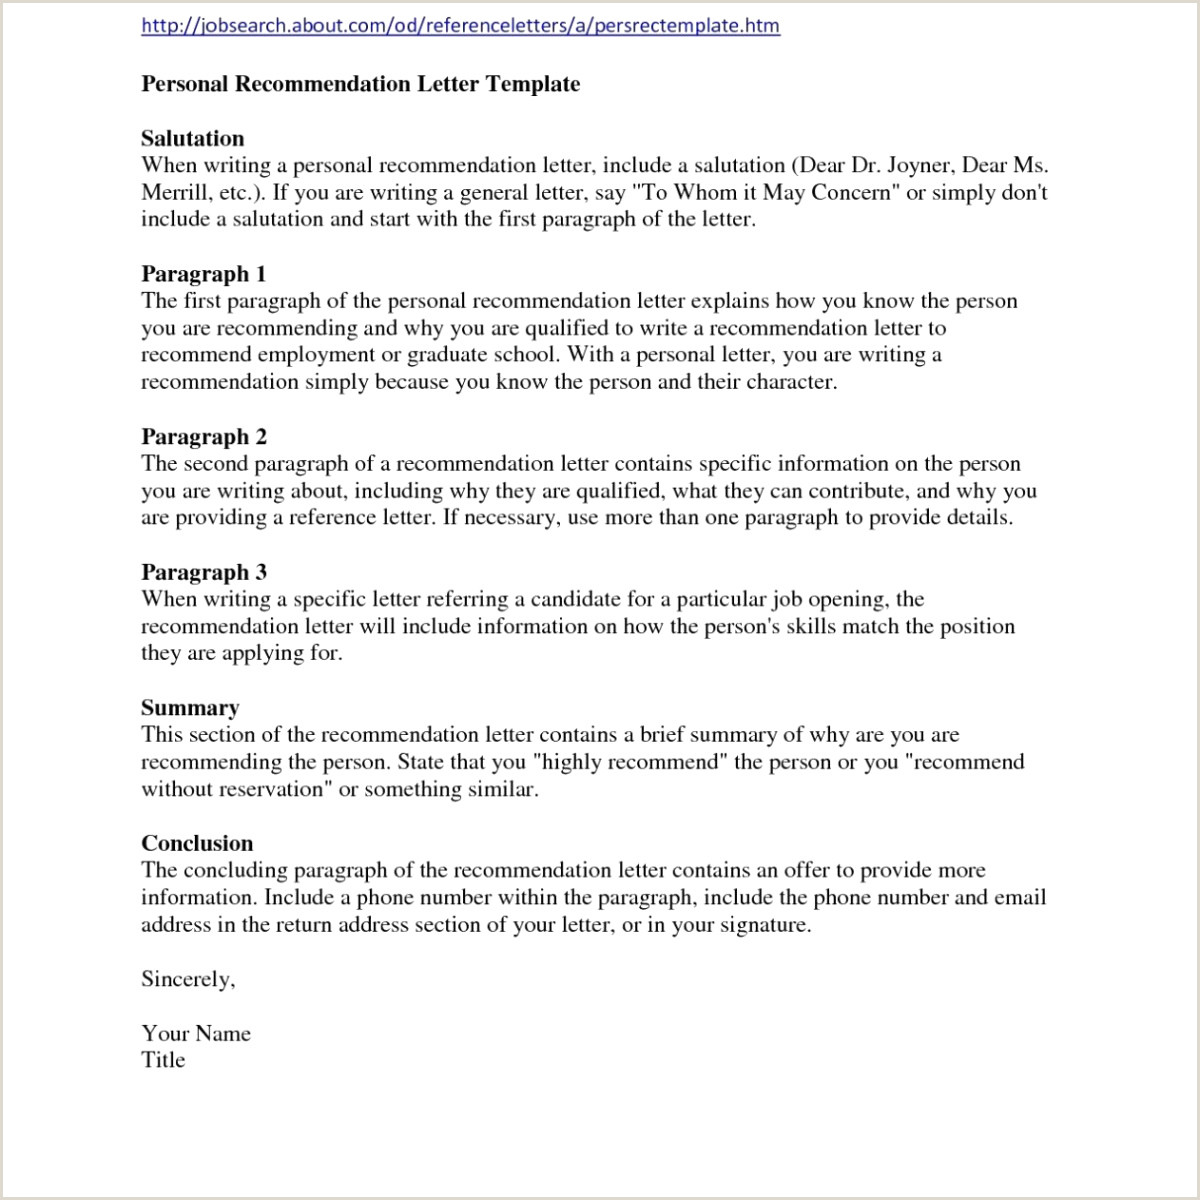 Cv Professional Title Examples Free Cv Template Simple Mon Resume format Professional Best